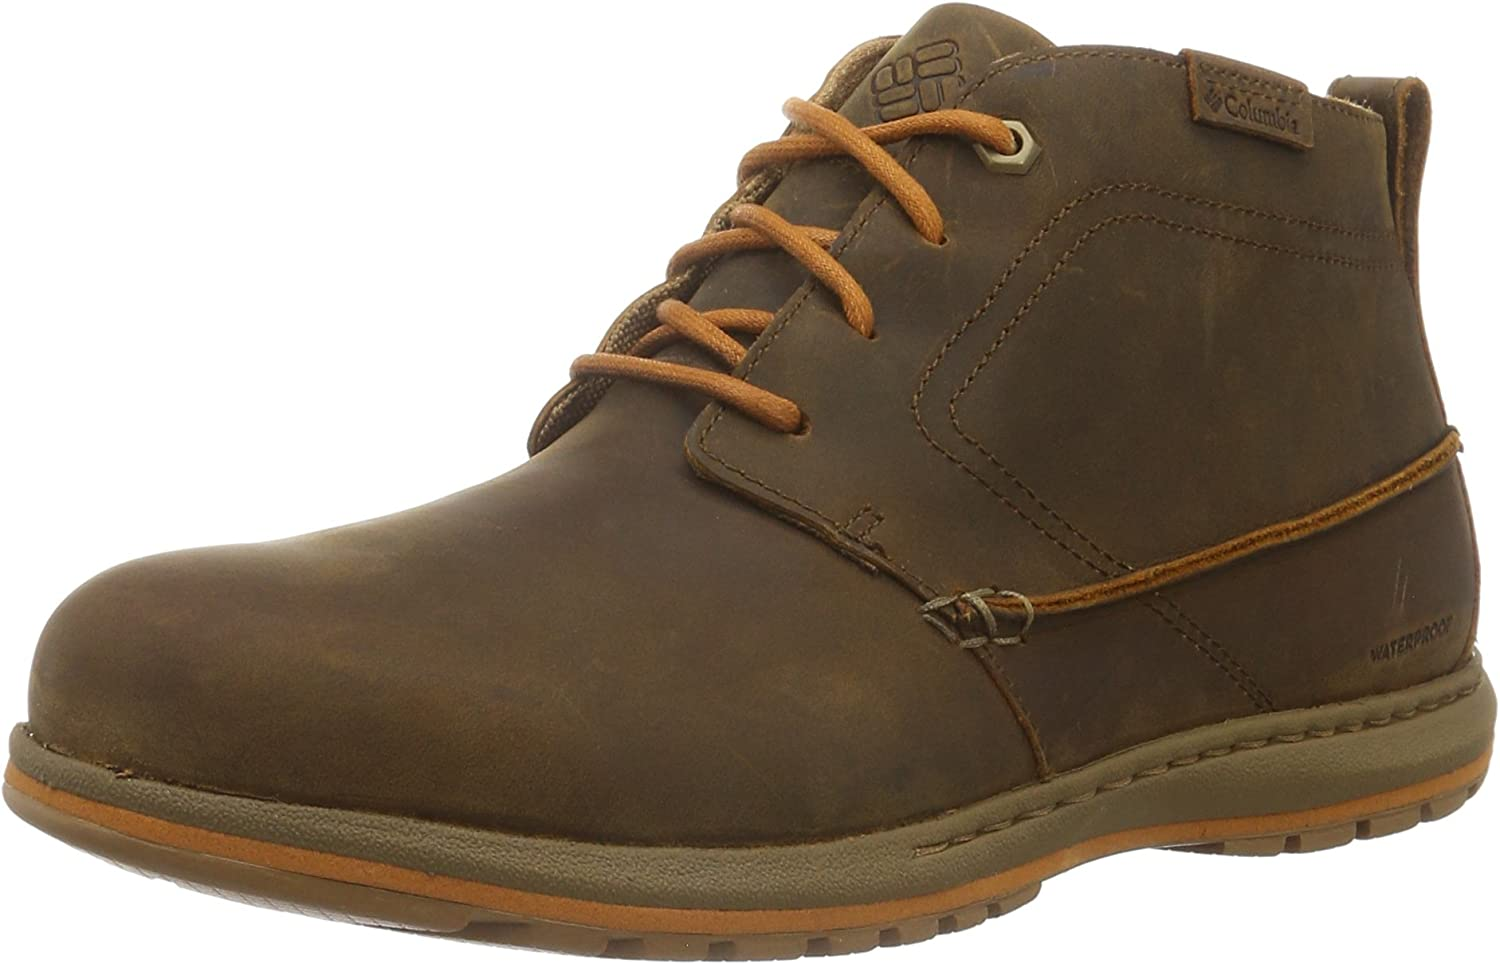 TALLA 40 EU. Columbia Davenport Chukka Waterproof Leather, Oxford para Hombre